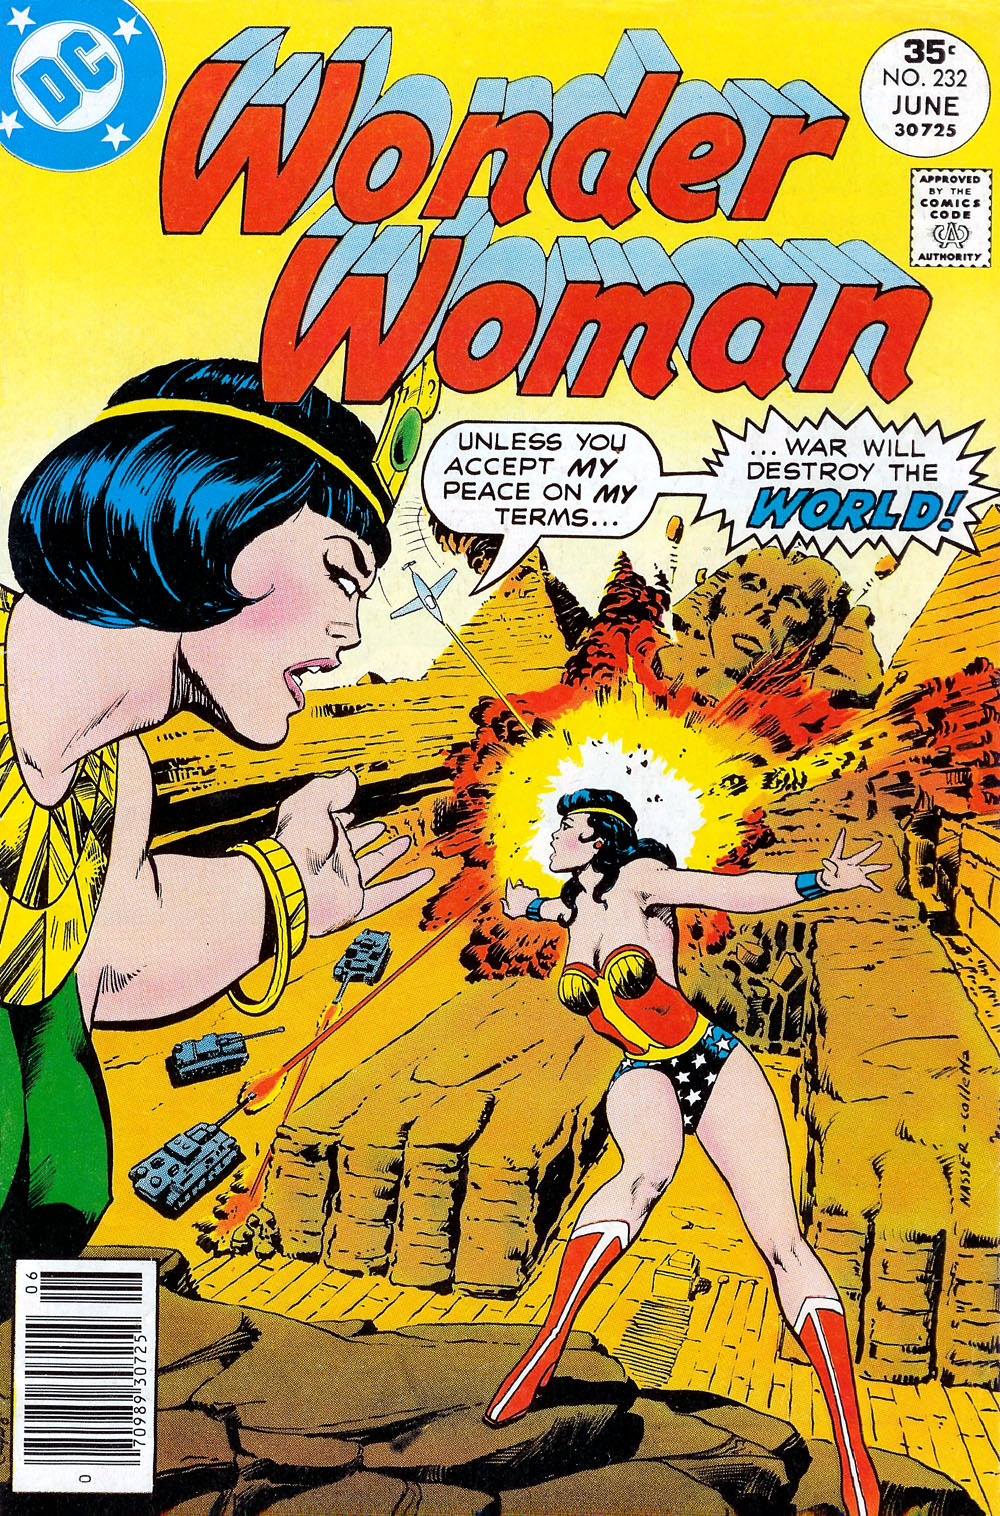 Wonder Woman (1942) #232, cover penciled by Mike Nasser & inked by Vince Colletta.